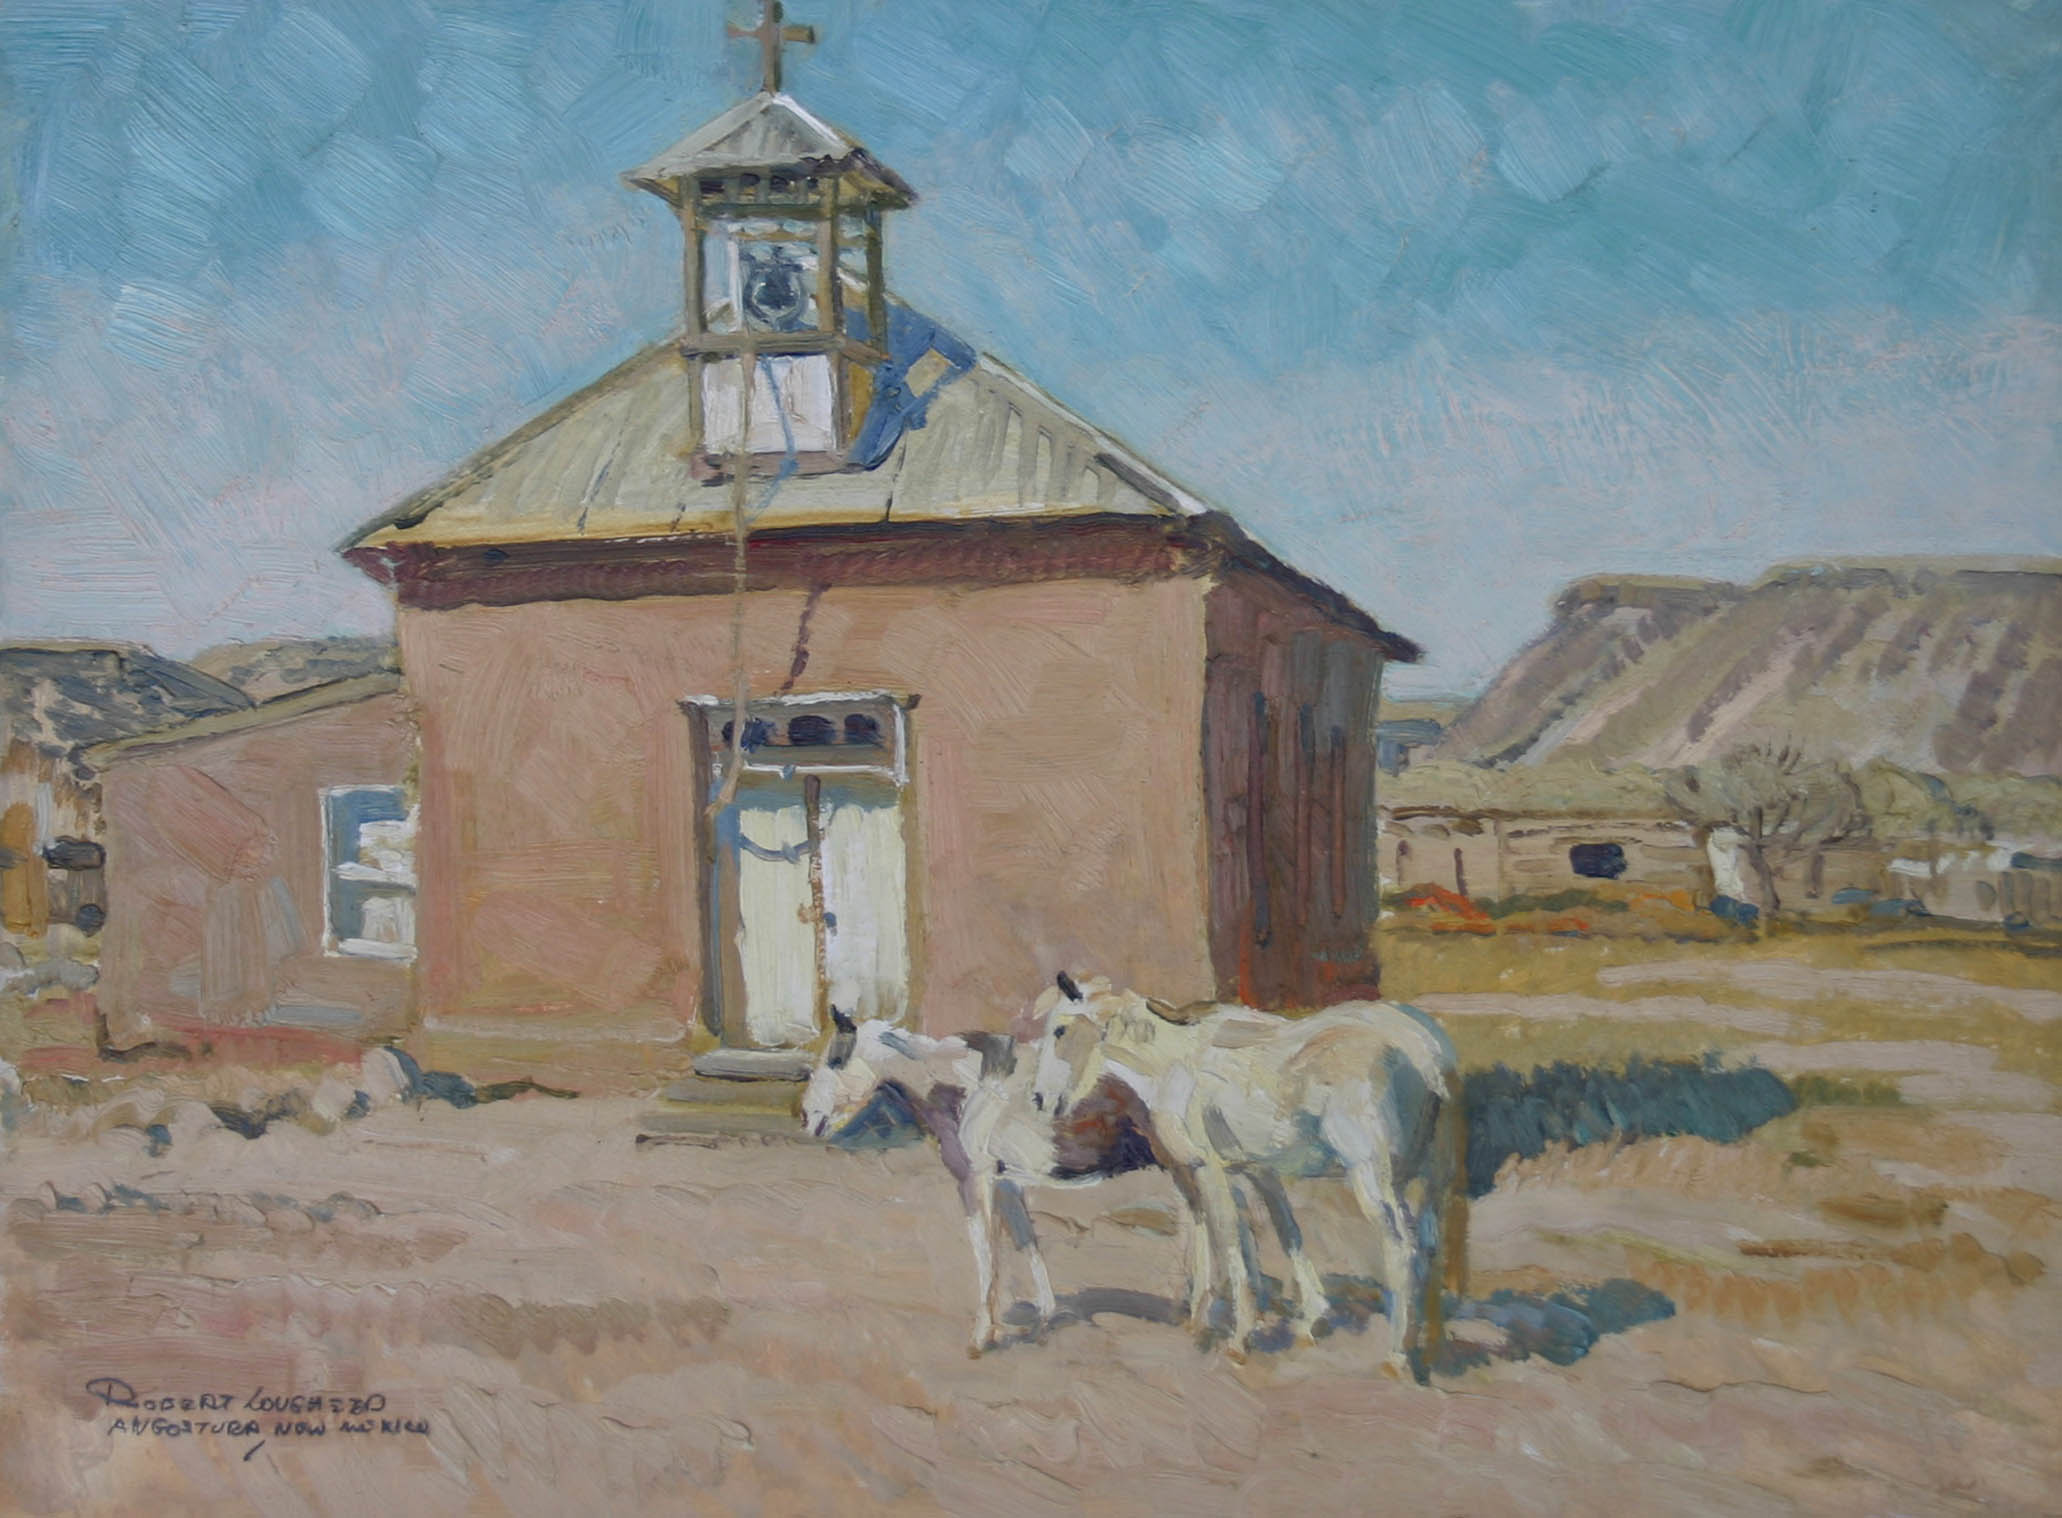 Angostura, New Mexico by  Robert Lougheed - Masterpiece Online